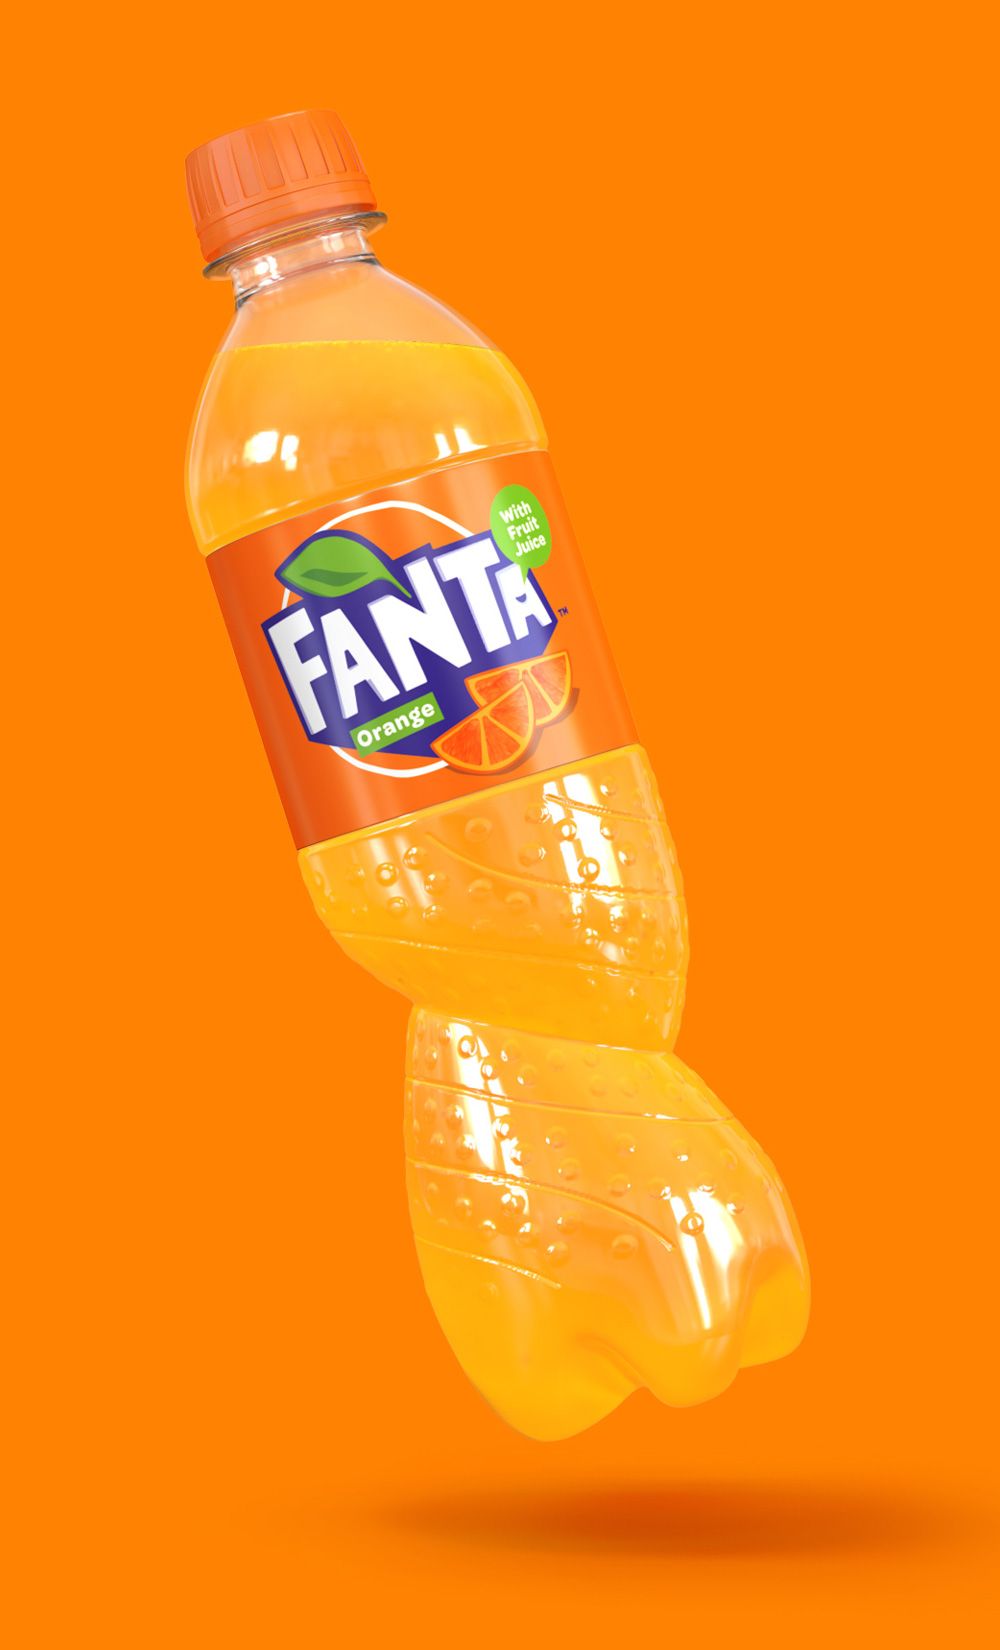 Follow-up: New Logo and Packaging for Fanta by Koto